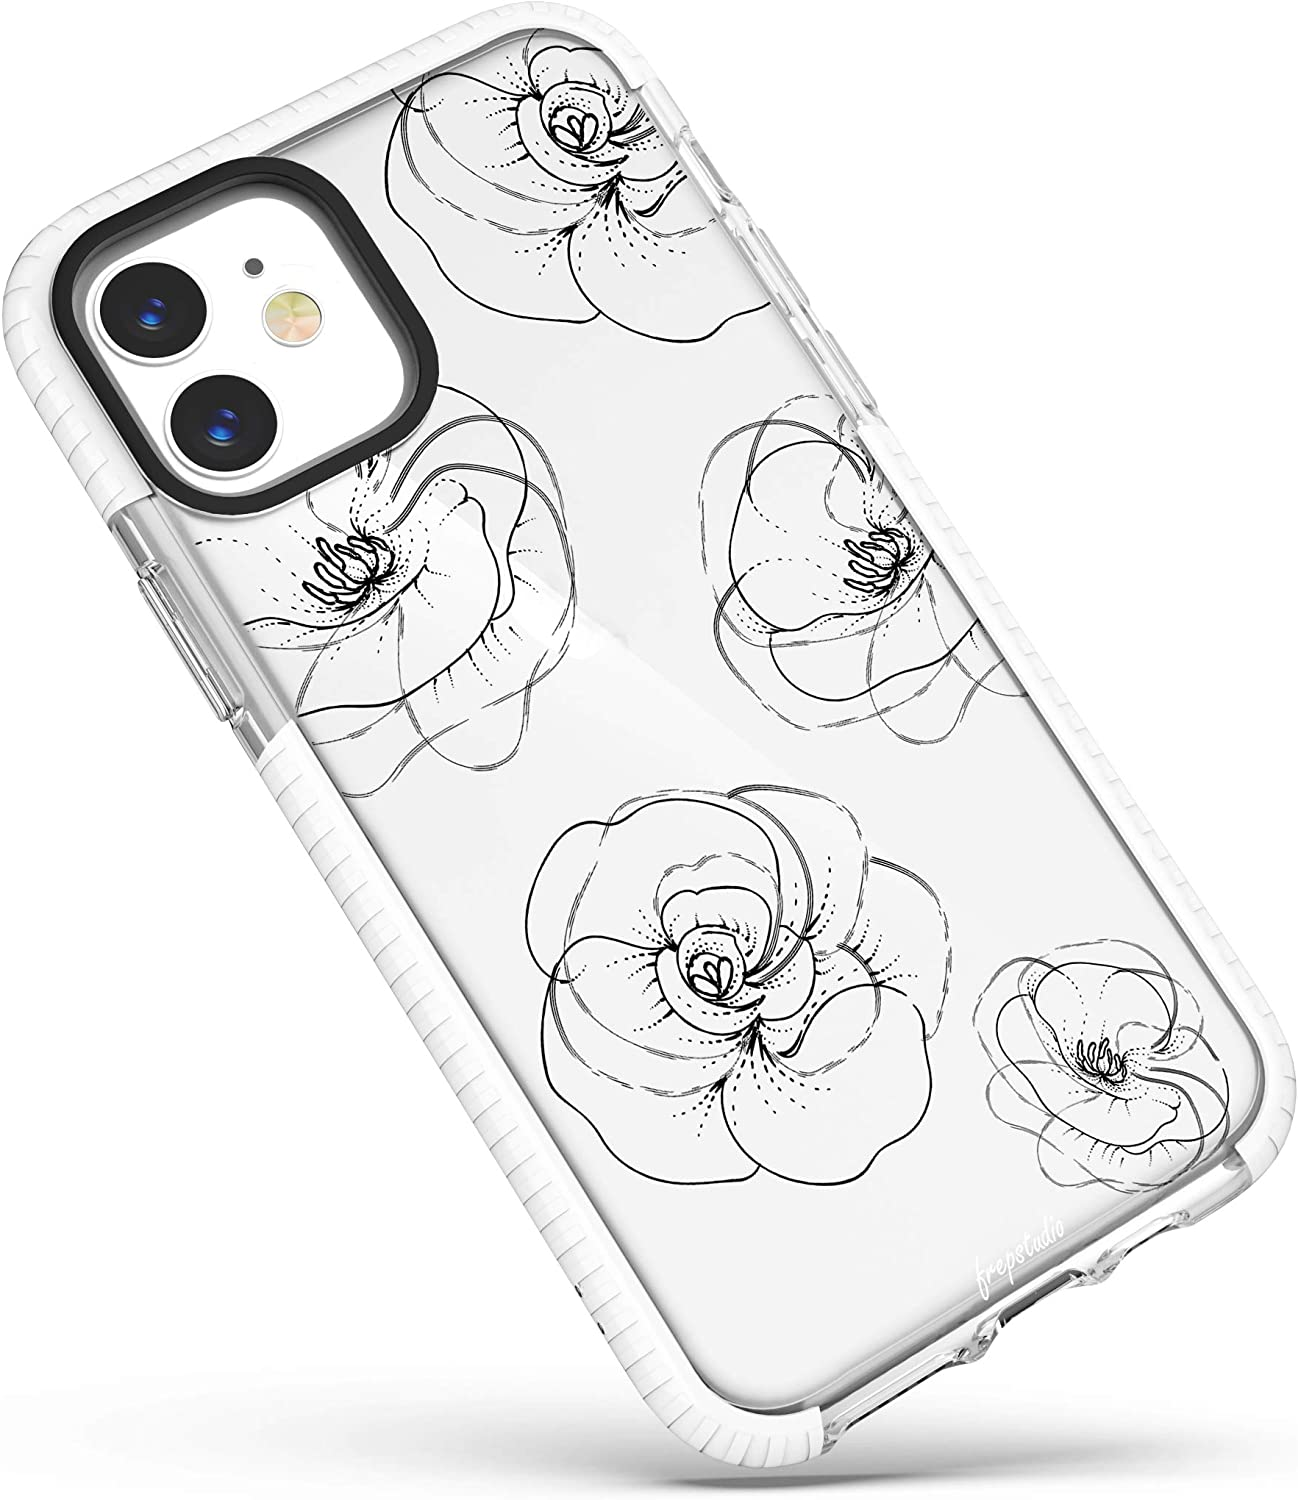 Floral Abstraction Case iPhone 12 Pro iPhone 11 iPhone X iPhone 8 Plus 6 7 Samsung \u041c10 S20 S21 Ultra A7 Plus Landscape painting Flowers